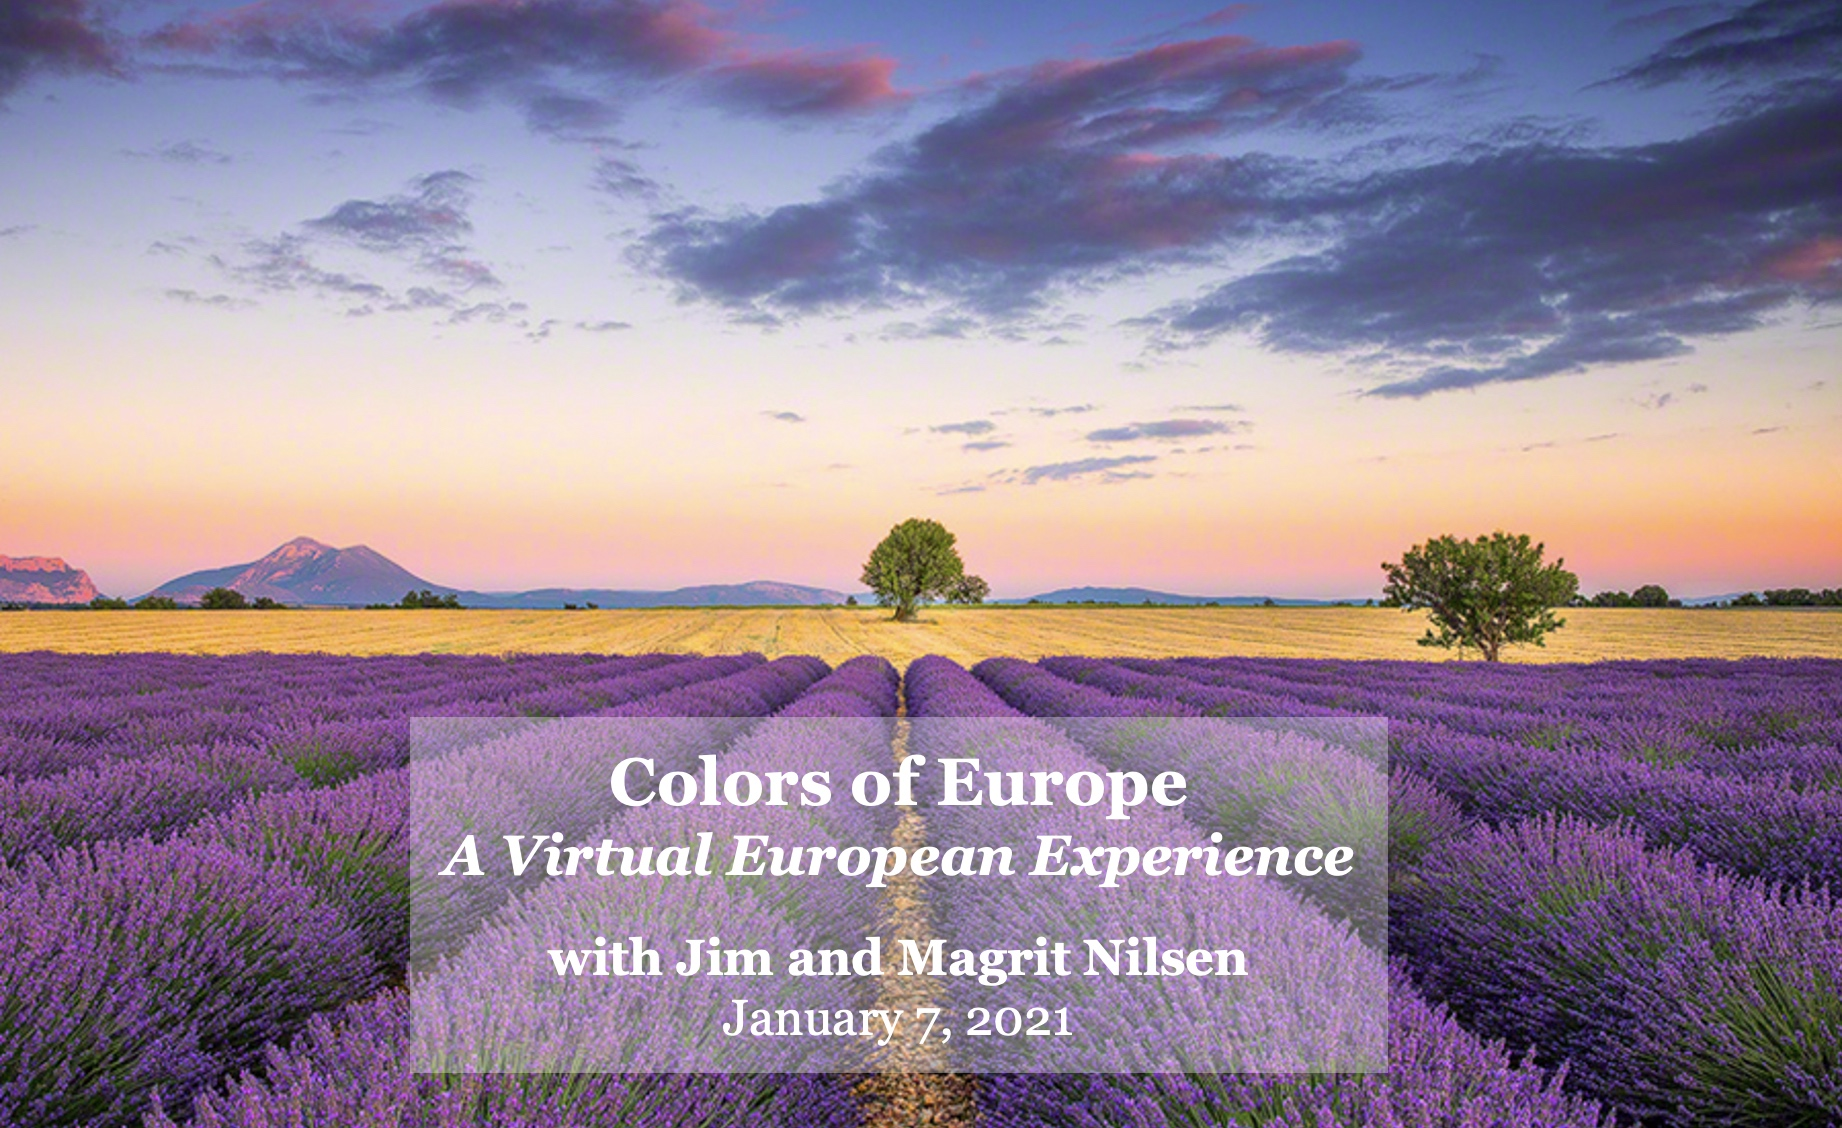 Colors of Europe